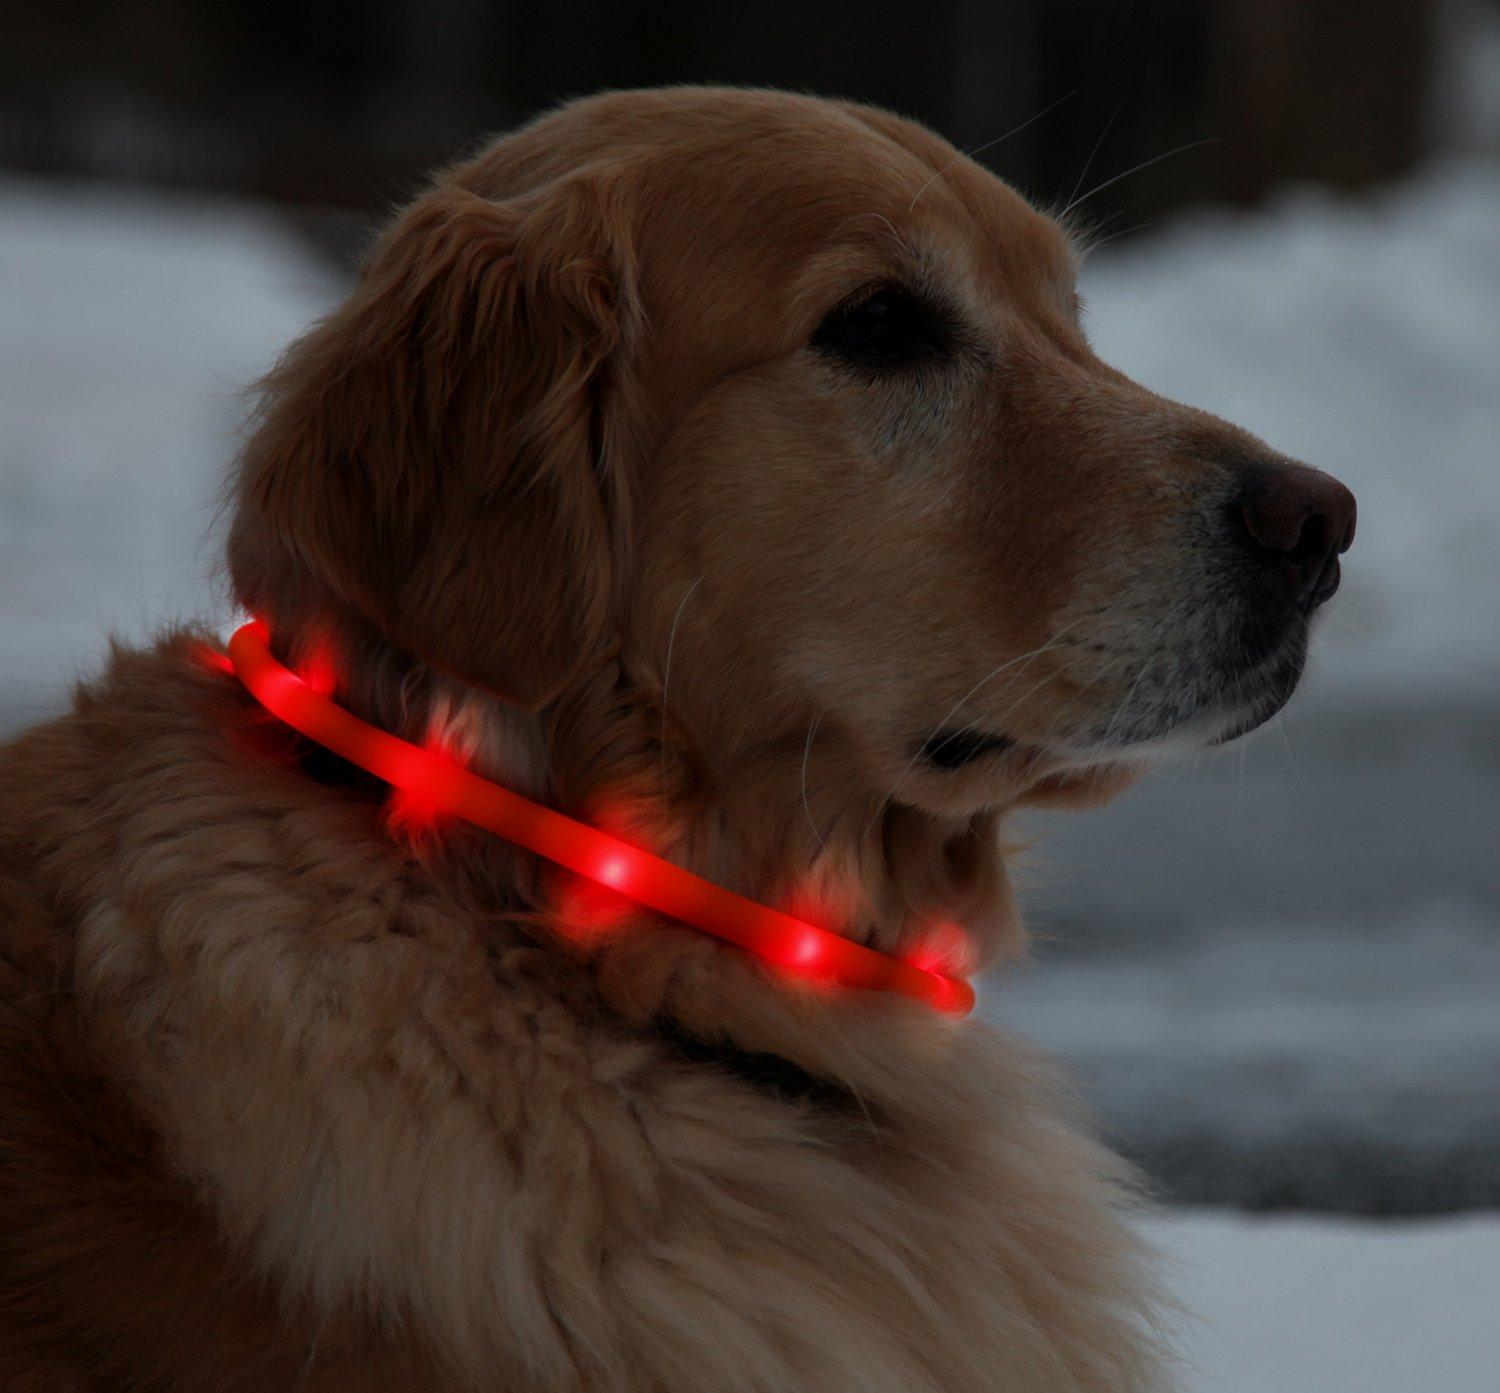 Collare per cani USB ricaricabile a LED Impermeabile Light-Up Night Neck Loop Fashing Tube Band Grow in the Dark